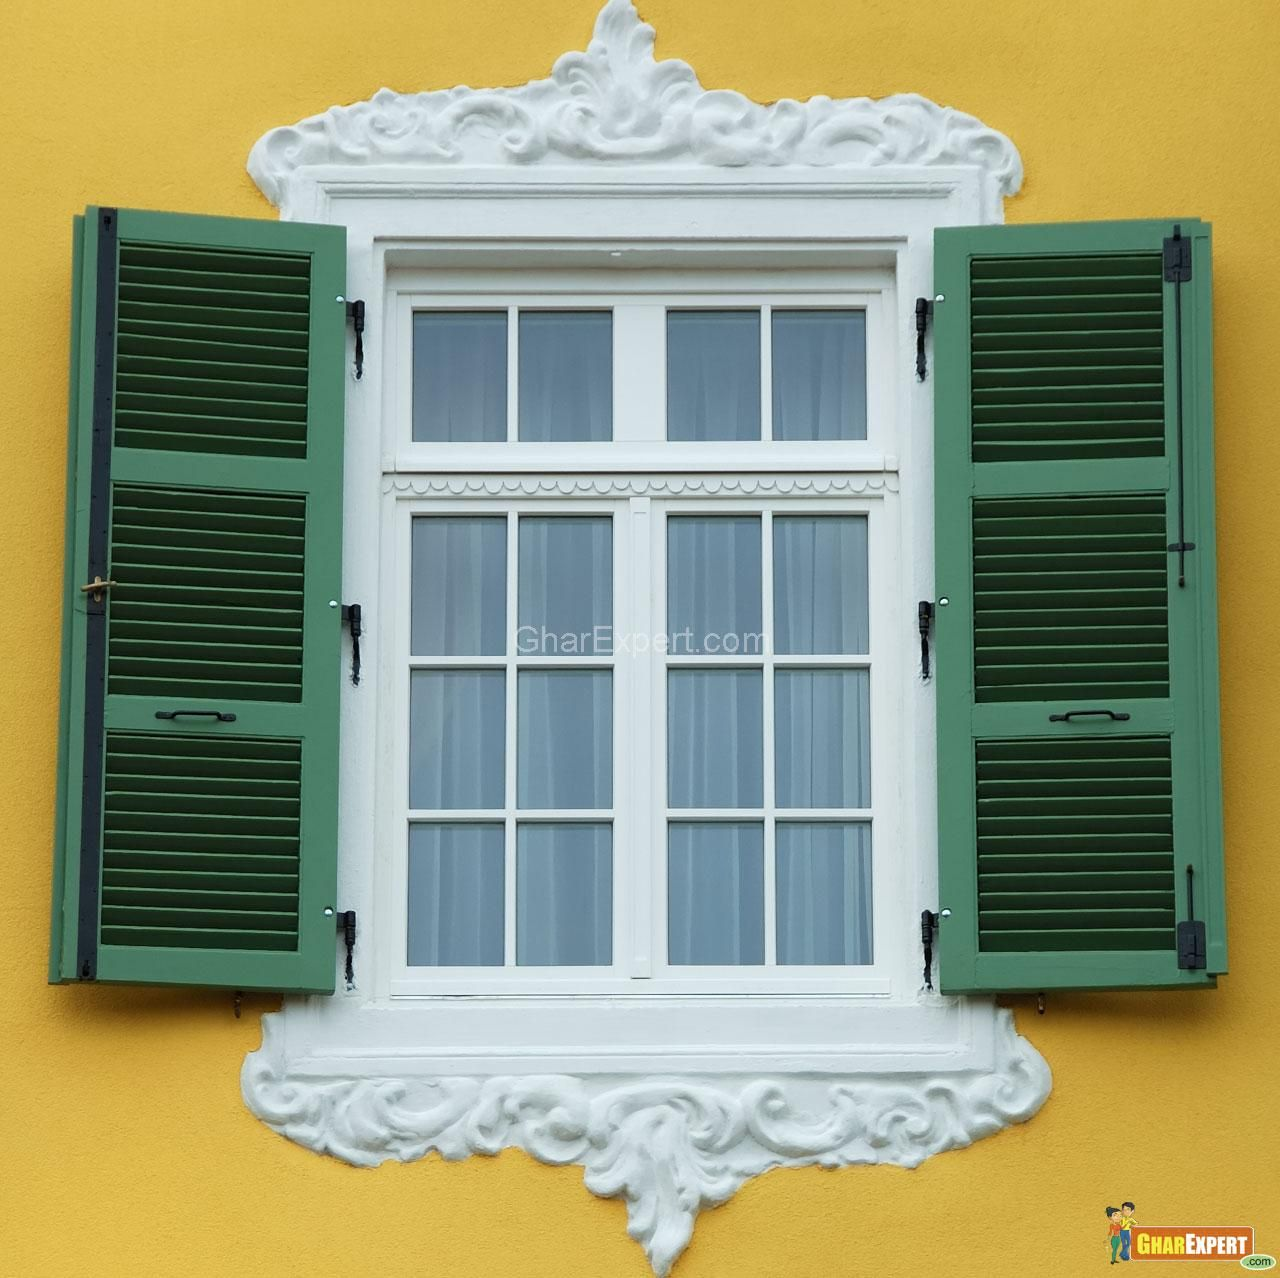 window designs pictures | Window Design